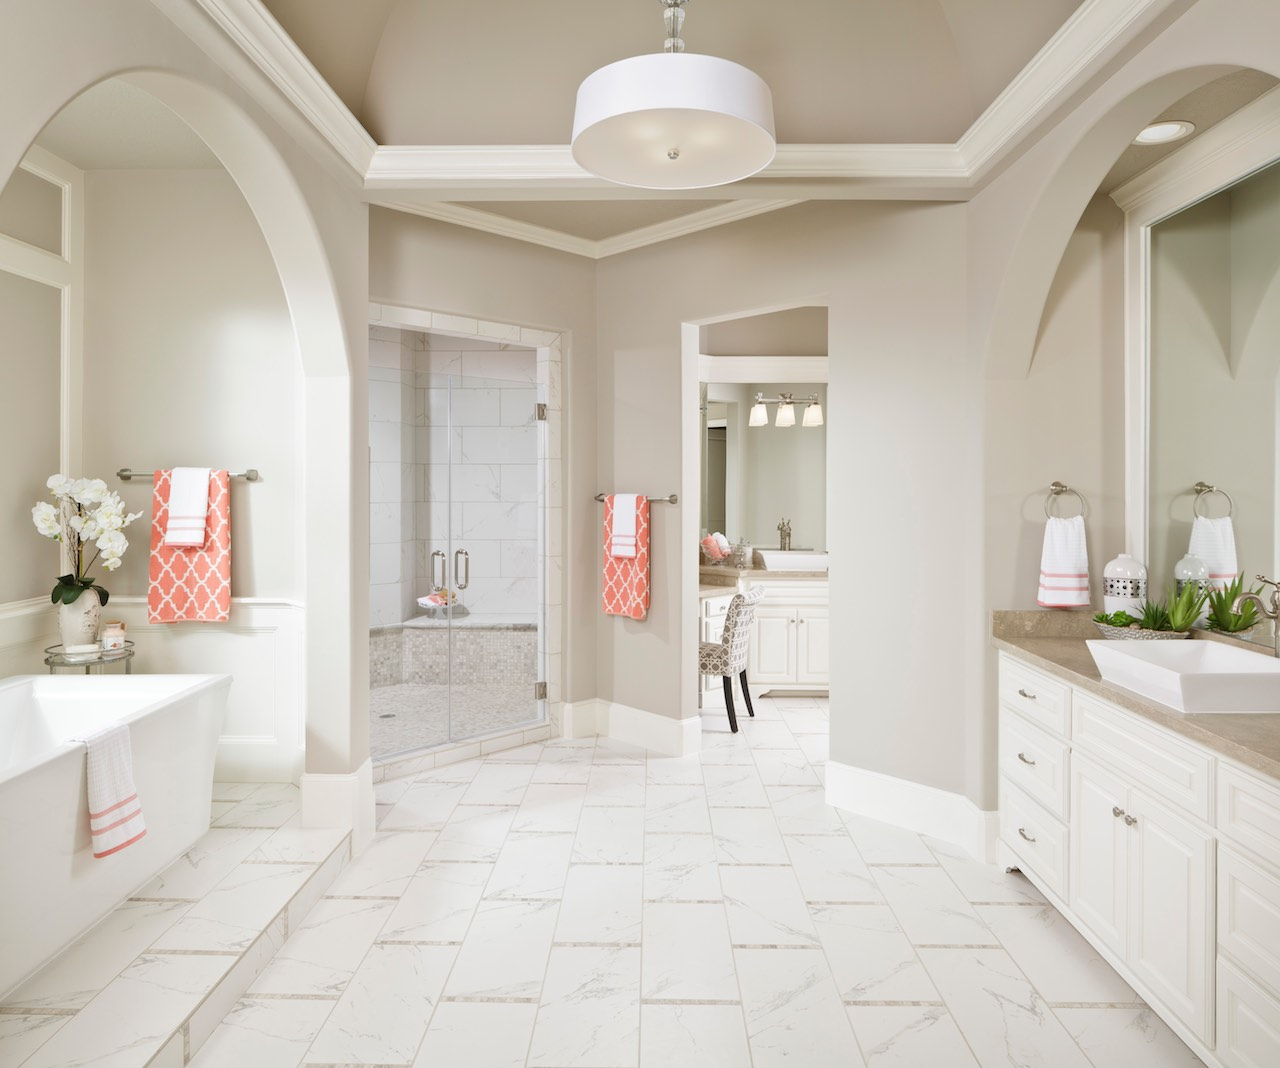 Designing your Dream Bathroom | Morning Star Builders